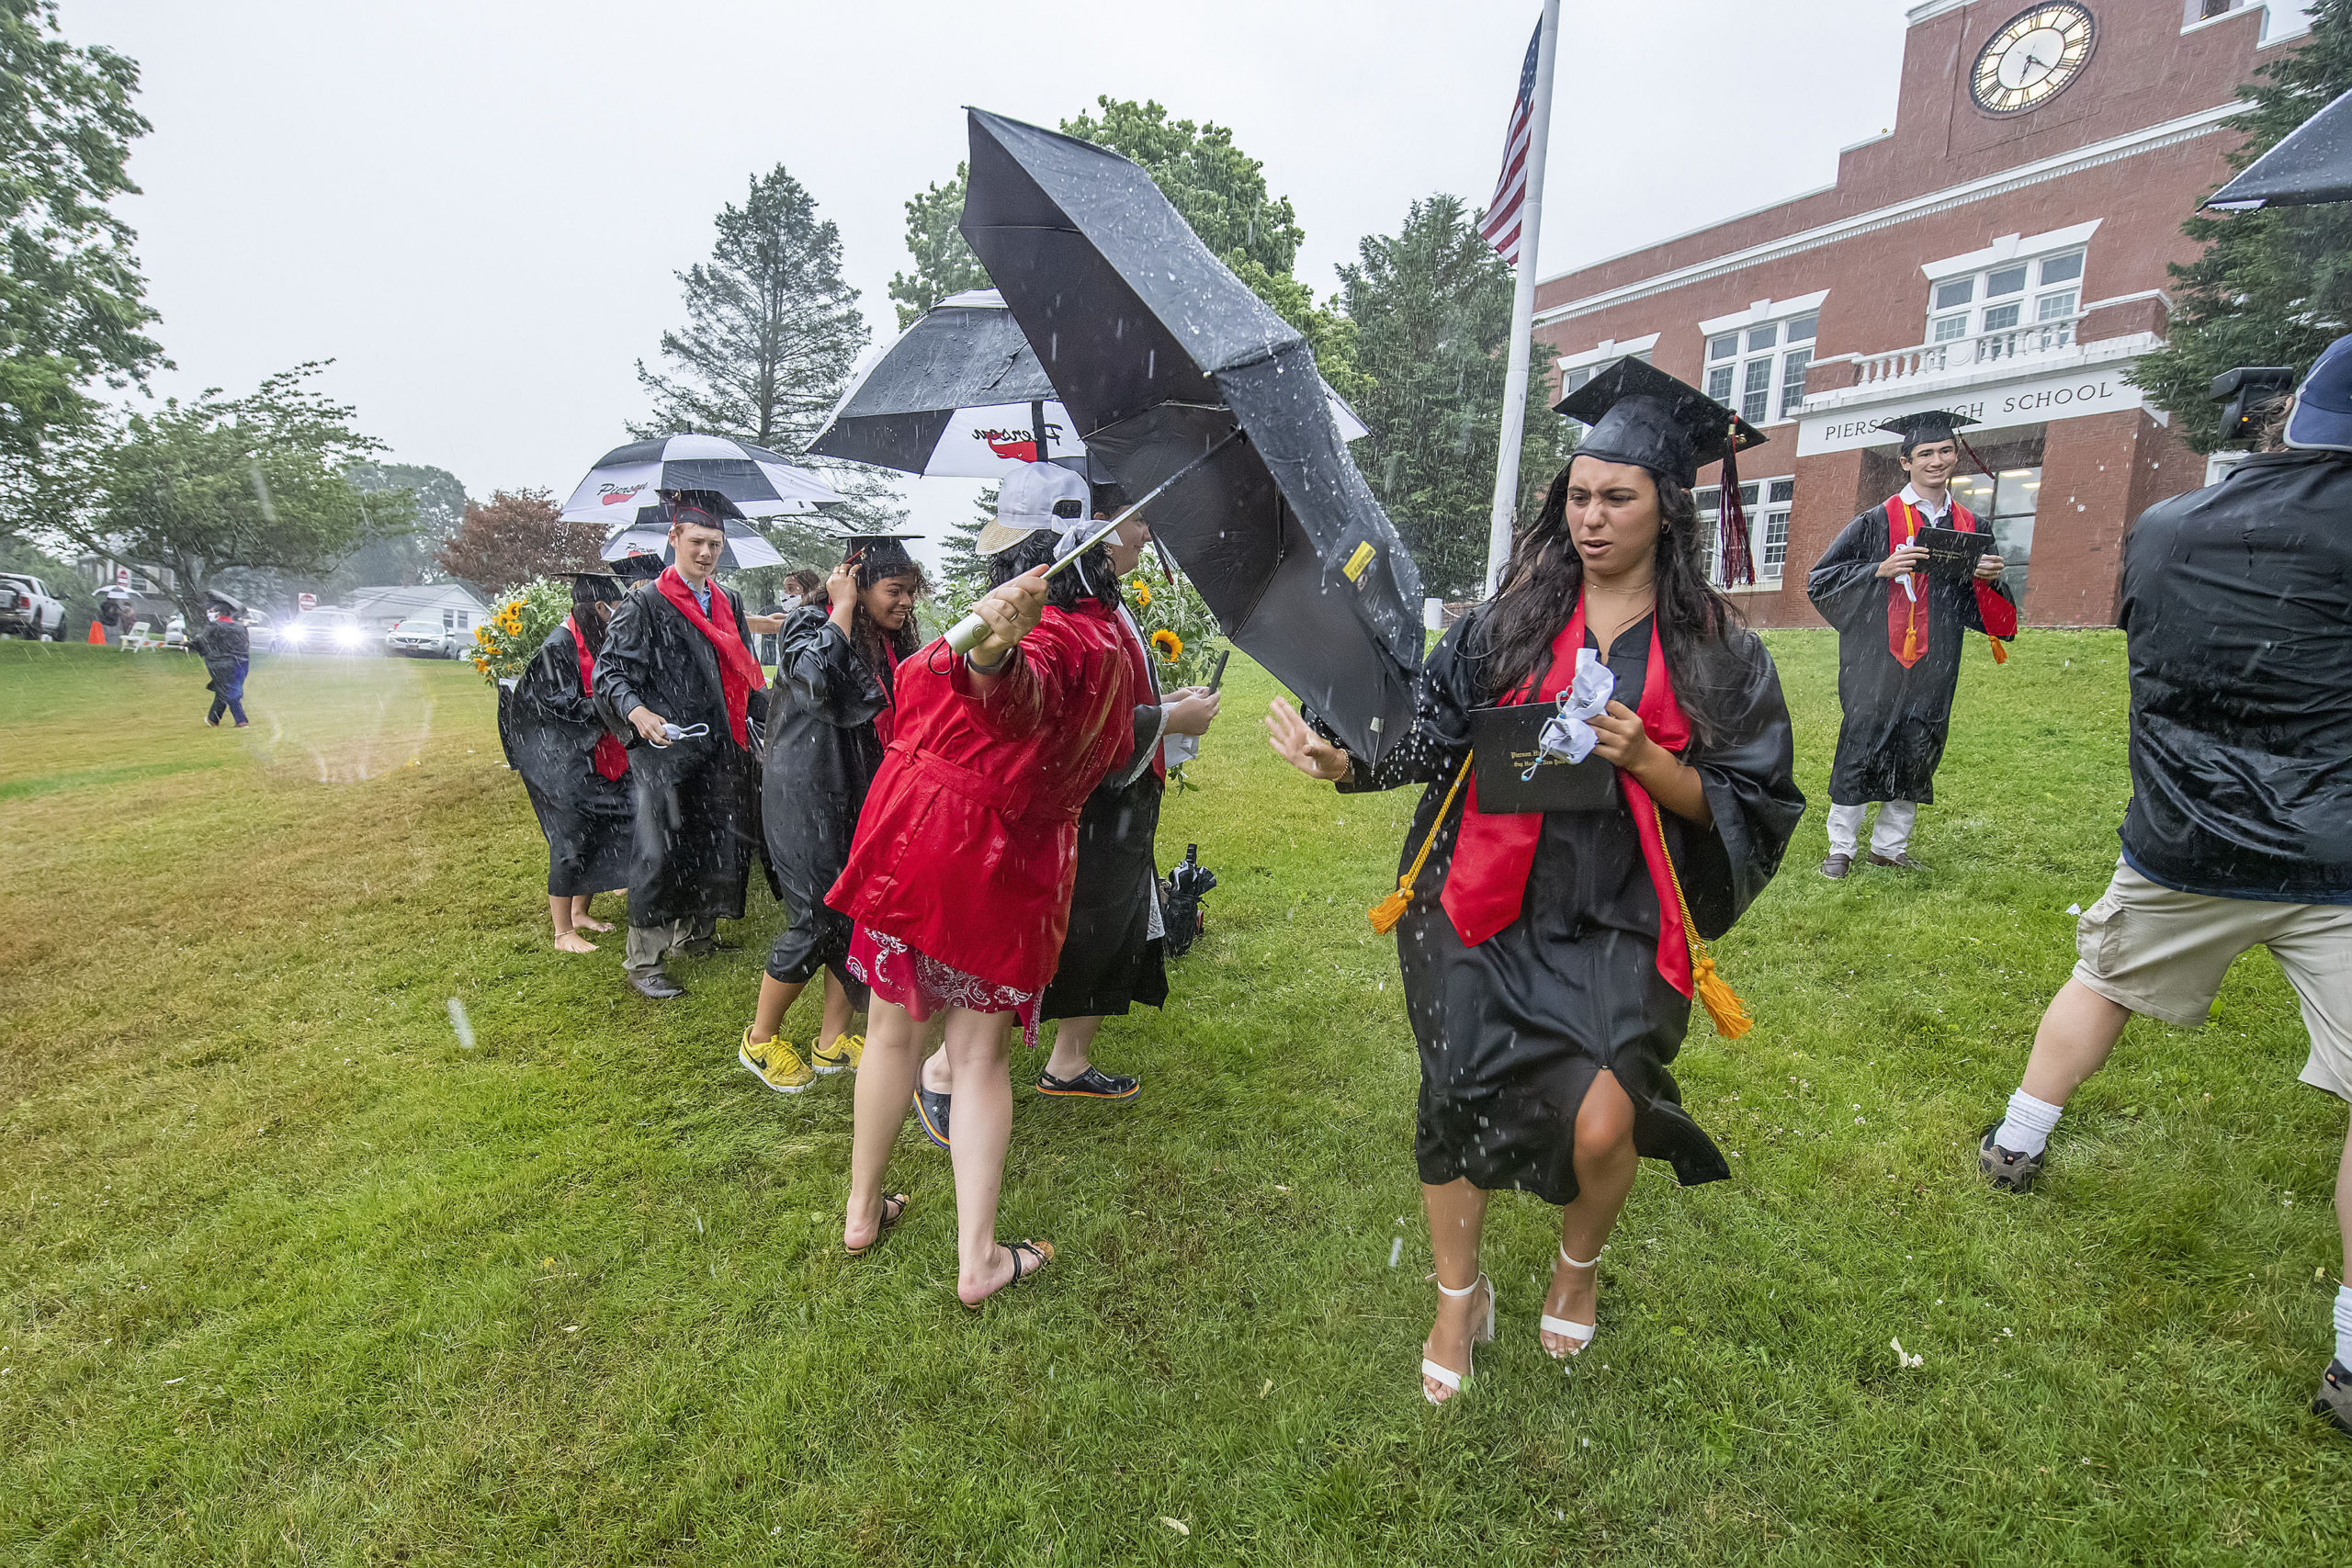 Senior Carly Gulotta rushes to get back to her seat after receiving her diploma and being photographed amidst the scramble in the pouring rain during the Pierson High School 2020 Commencement Ceremony at Pierson High School on Saturday.